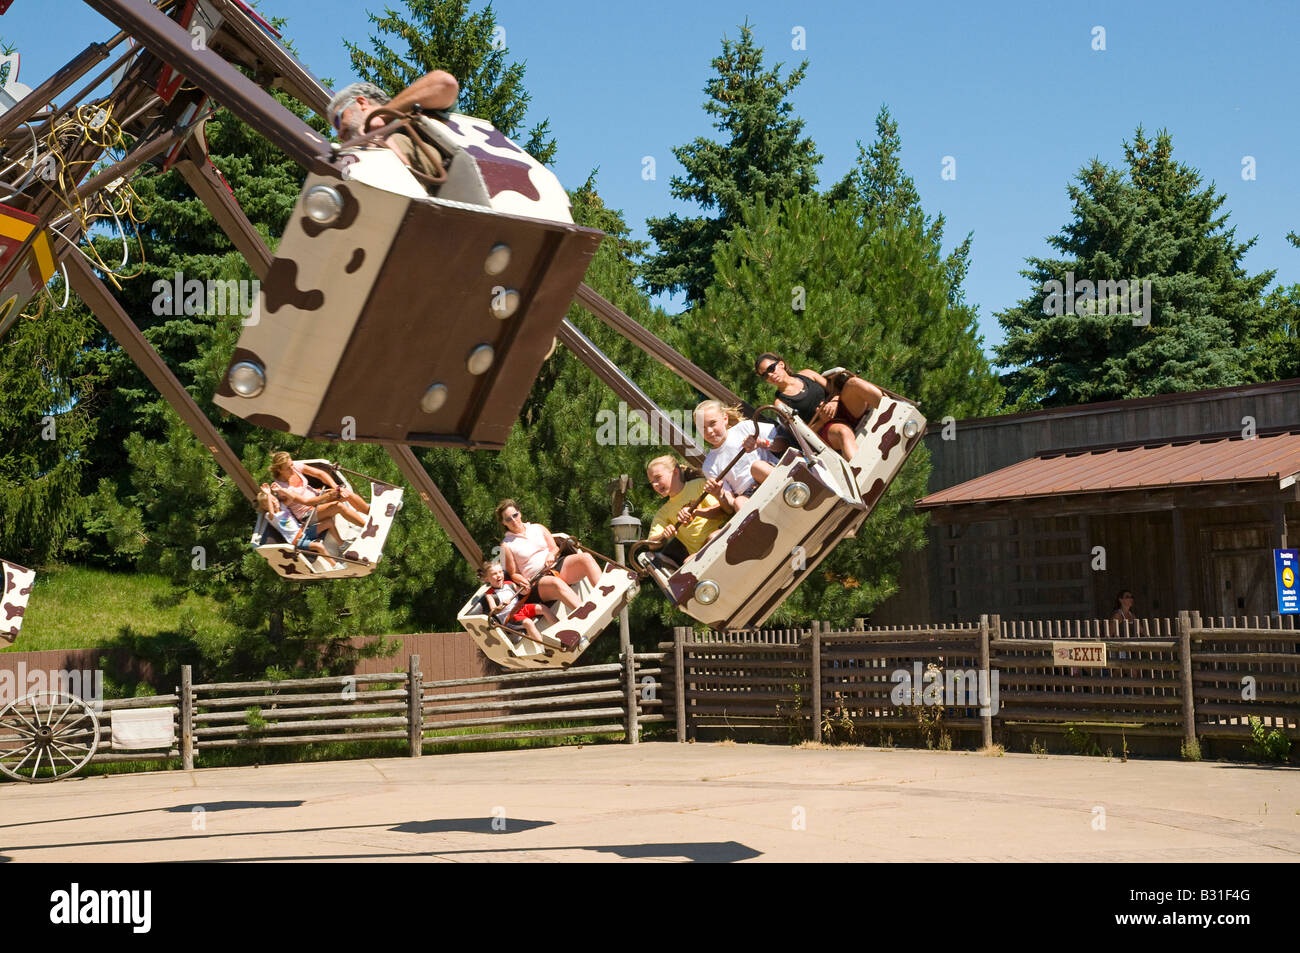 Six Flags Great America Stock Photos & Six Flags Great America Stock ...